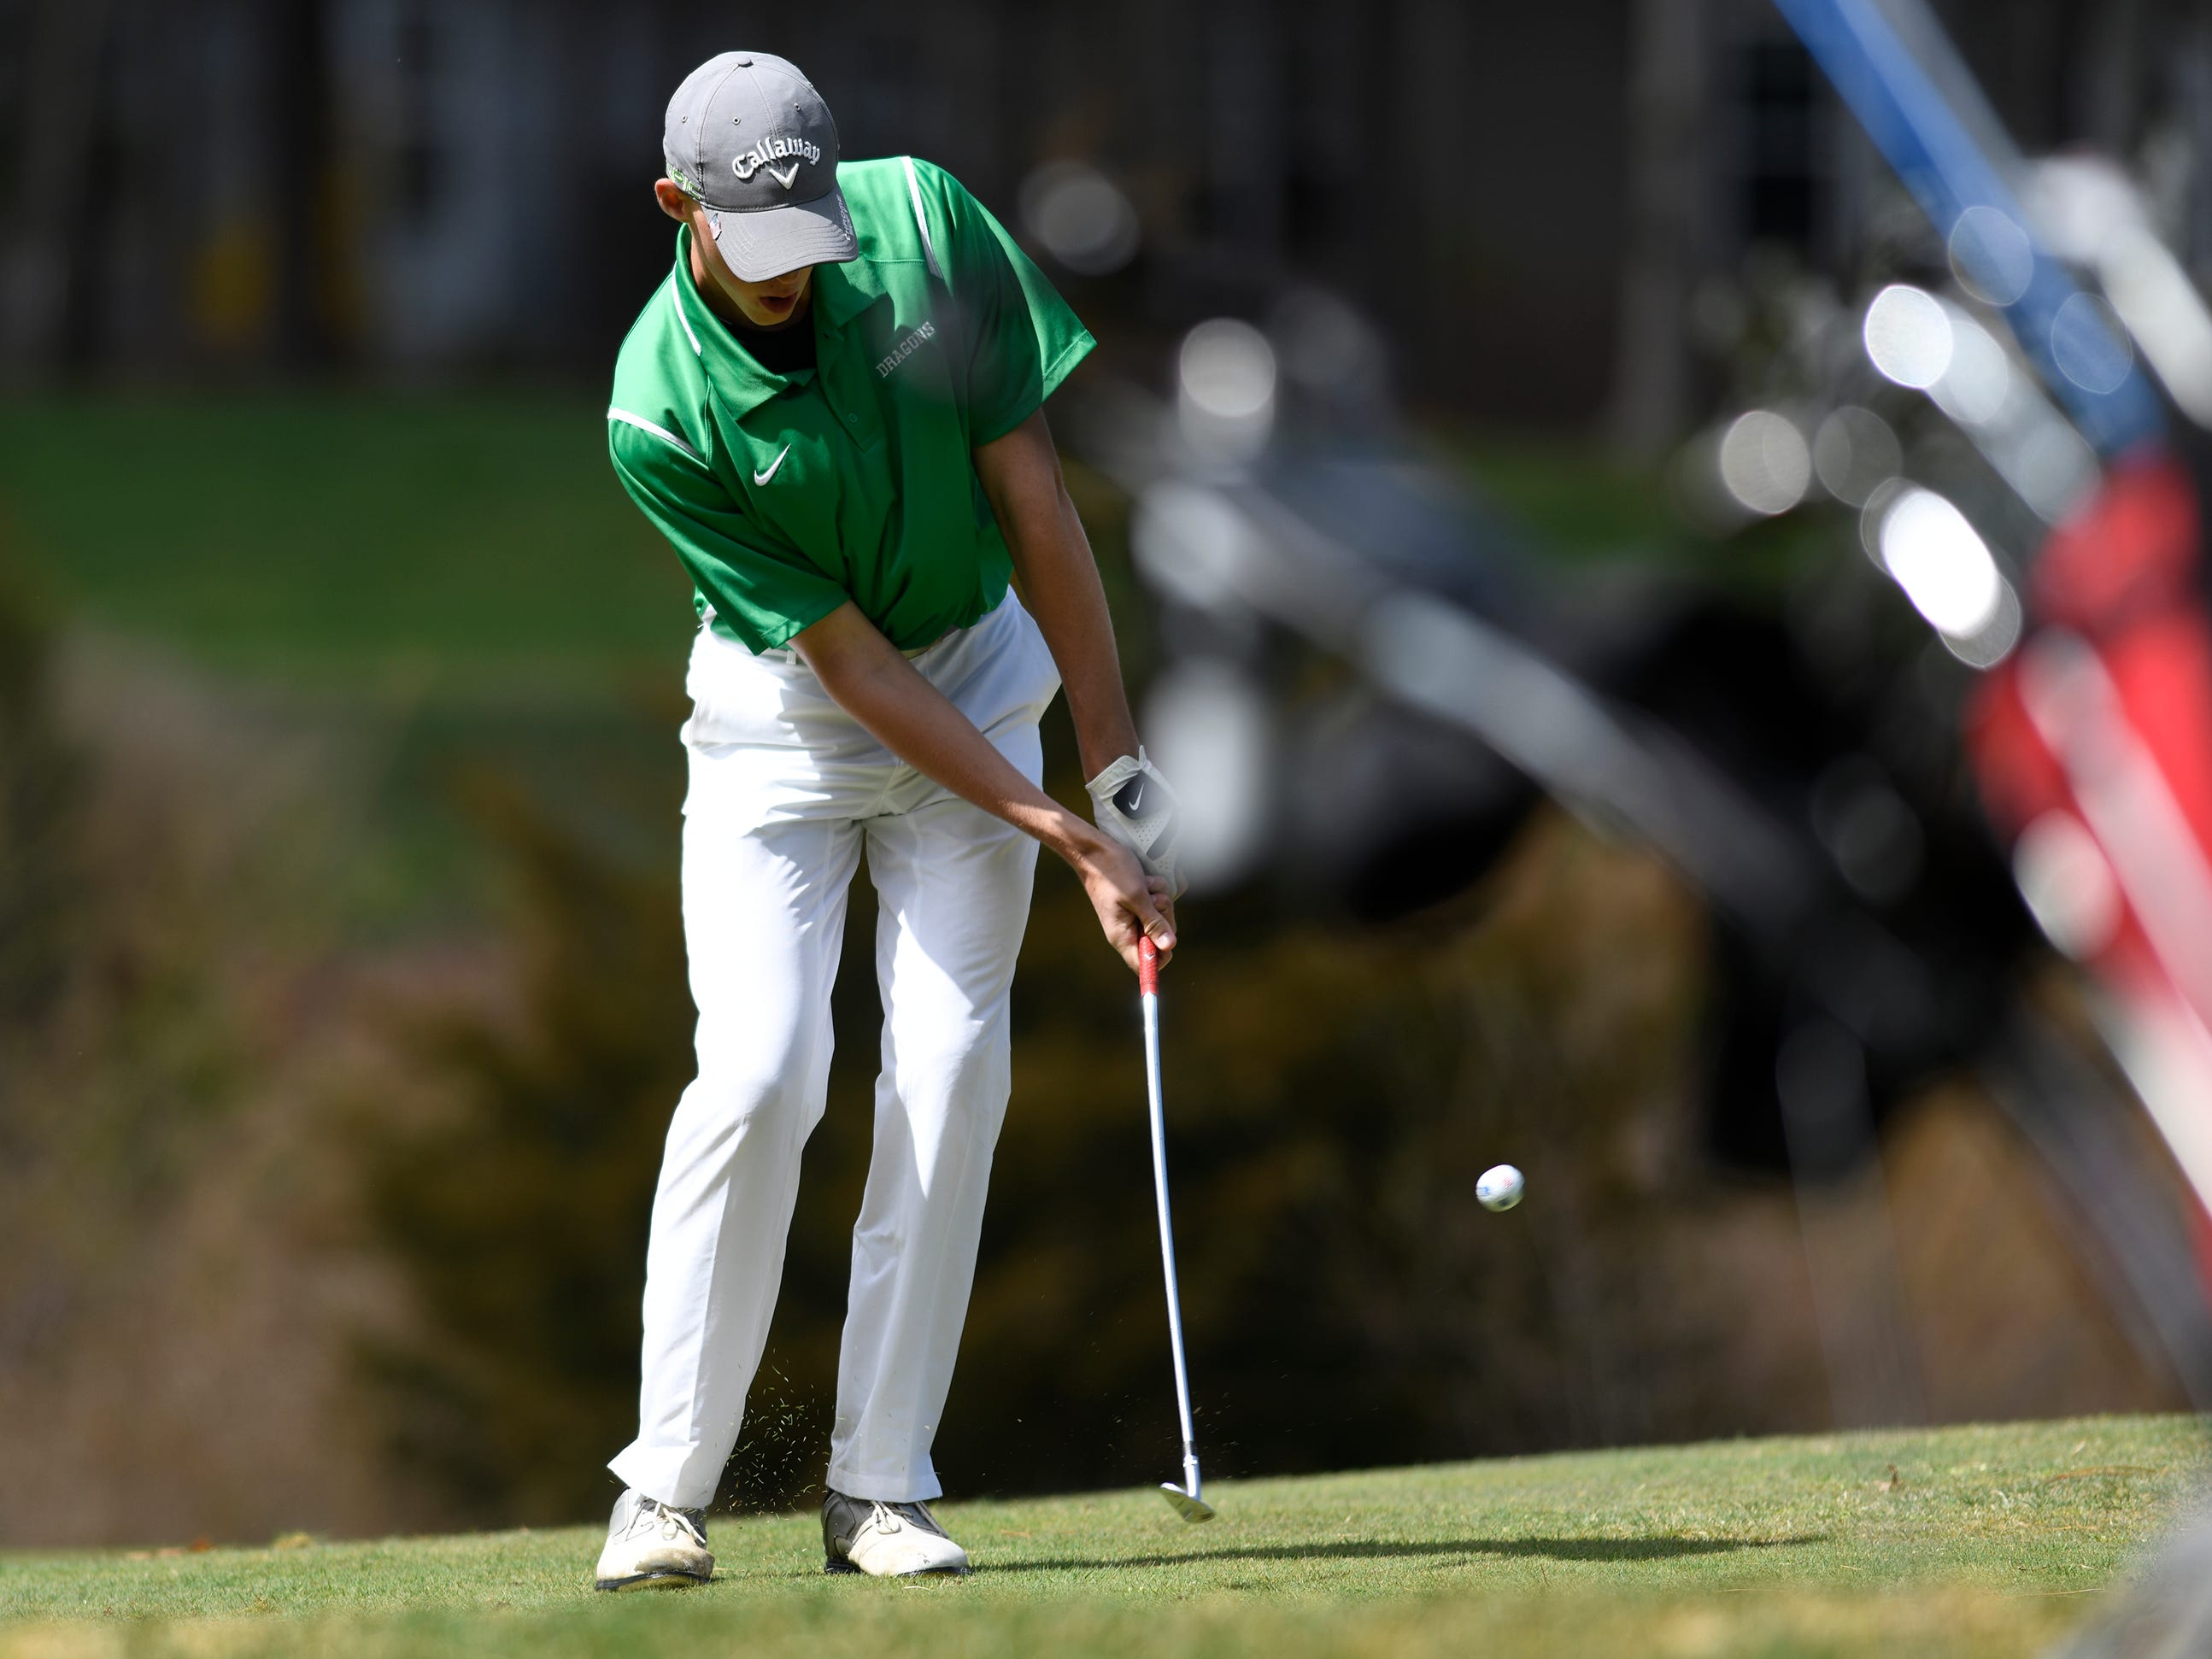 Derek Nahrwold of Brick Township competes at the Ocean County Tournament on April 15, 2019,  at Sea Oaks in Little Egg Harbor. Toms River North's Connor Bekefi emerged as the individual champion with a 3-over-par 75, four shots better than teammate Leo Kane. Toms River North successfully defended its team title, posting a total of 336, which was 18 shots better than Southern. Brick Memorial finished third.